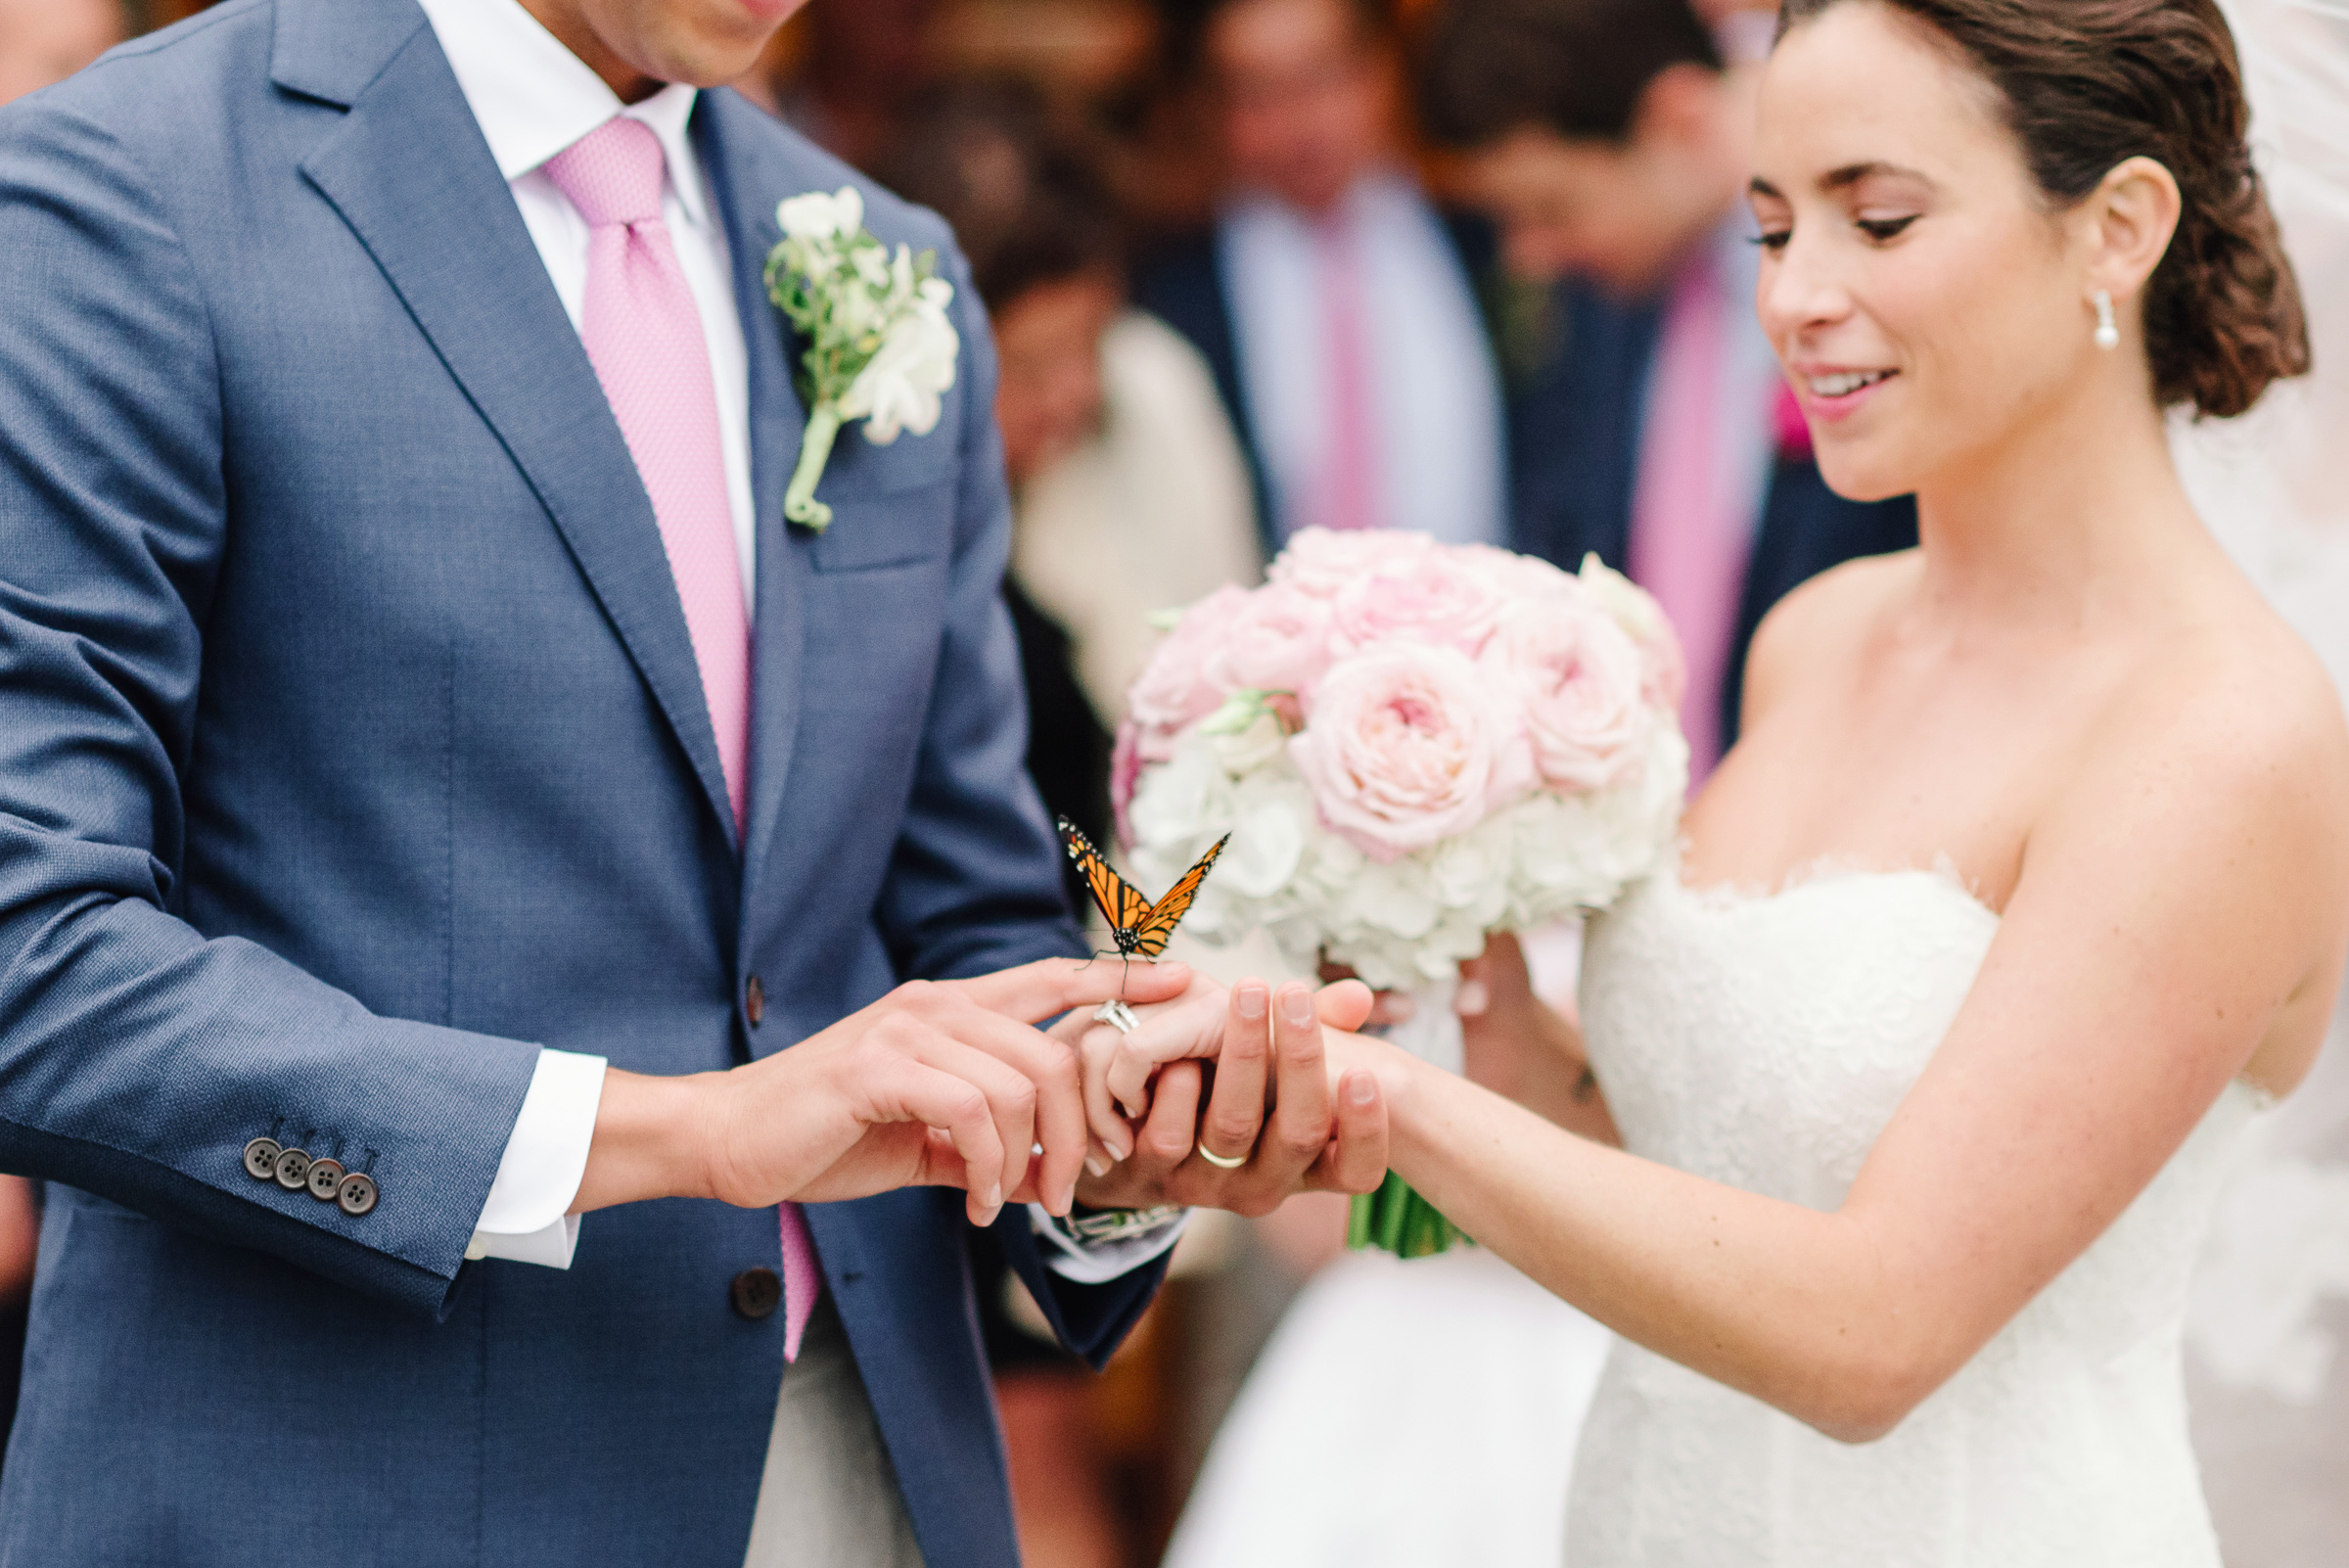 butterfly-lands-on-bride-s-finger-during-ring-exchange-photo-by-zofia-co-photography-nantucket